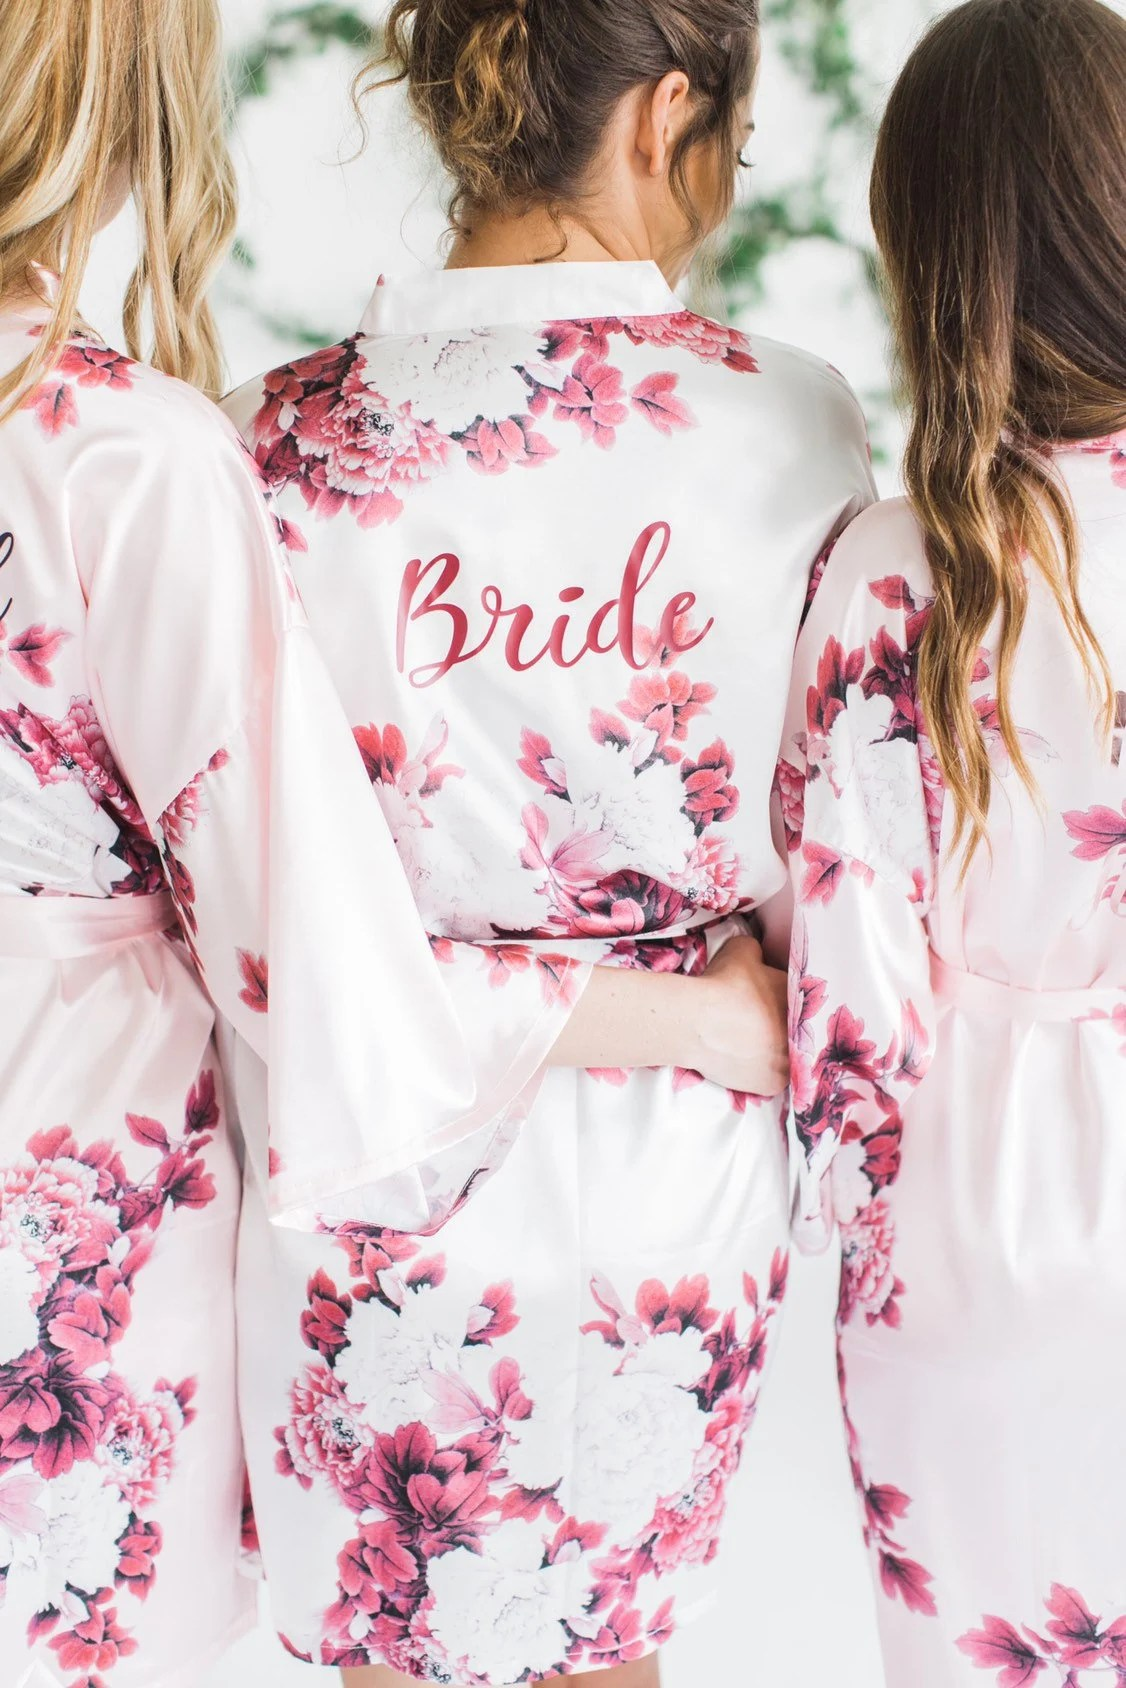 Silk Floral Robes Burgundy Floral Robes Bridesmaid Robes Pink